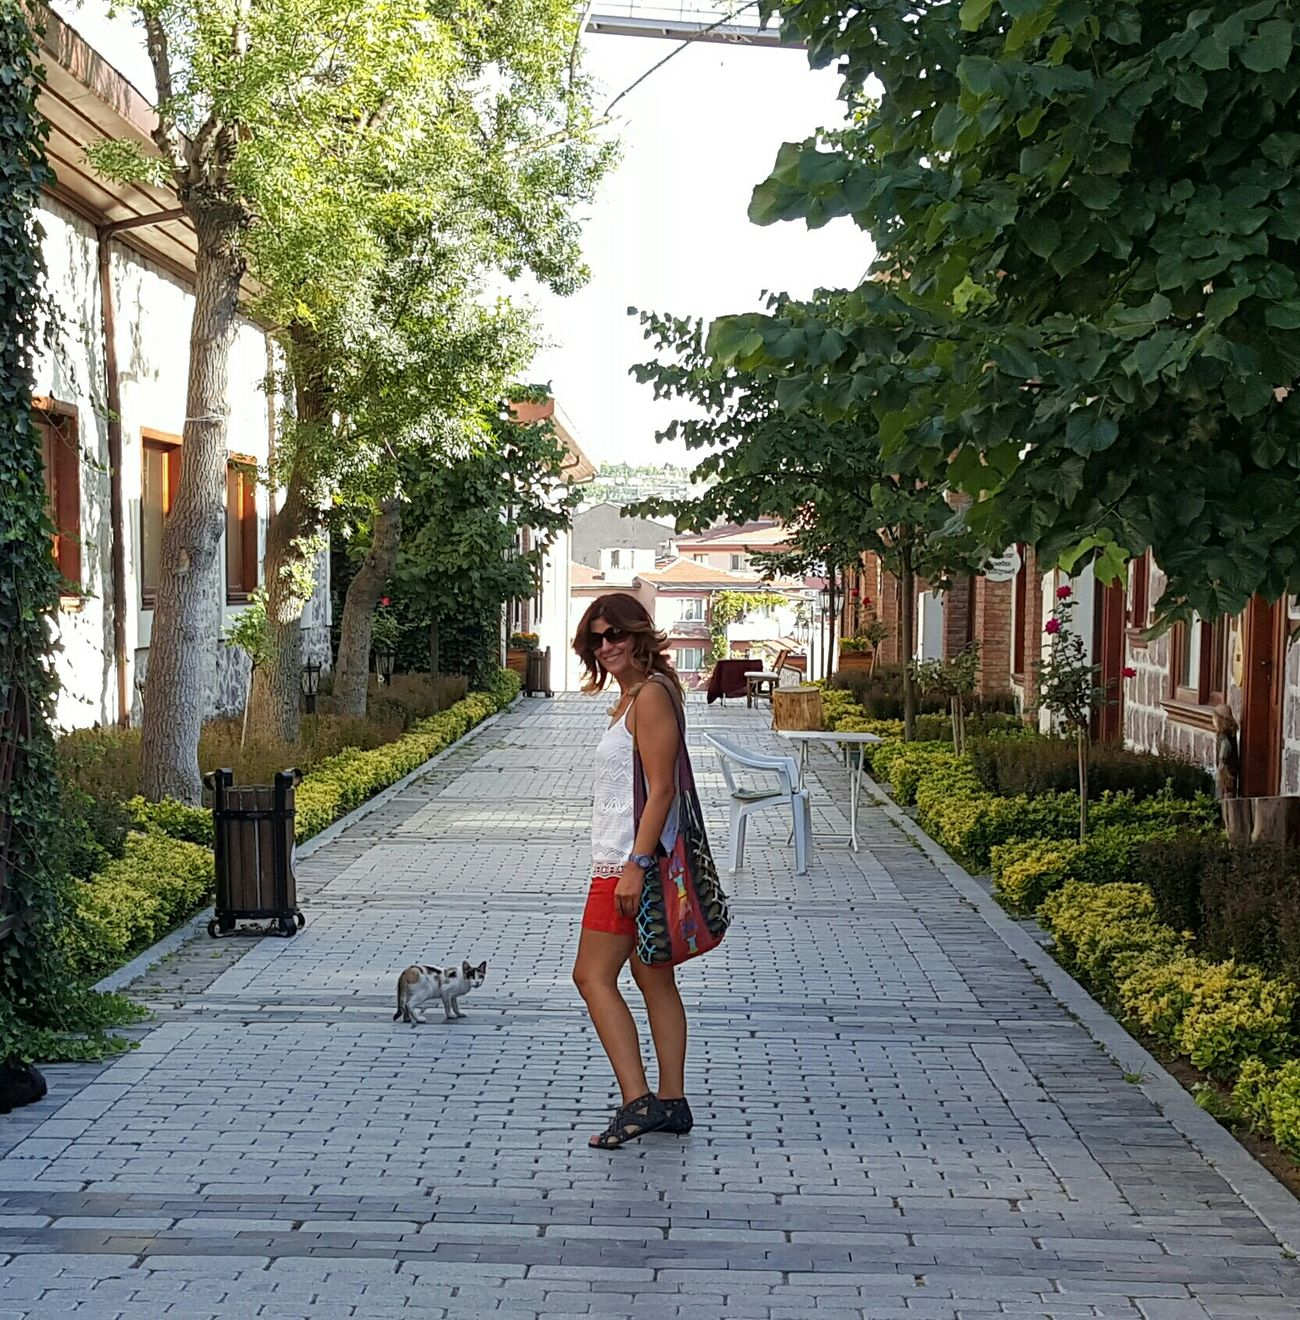 Cats Ankara Mypic That's Me! Walking Catslover Lovely Atmosphere